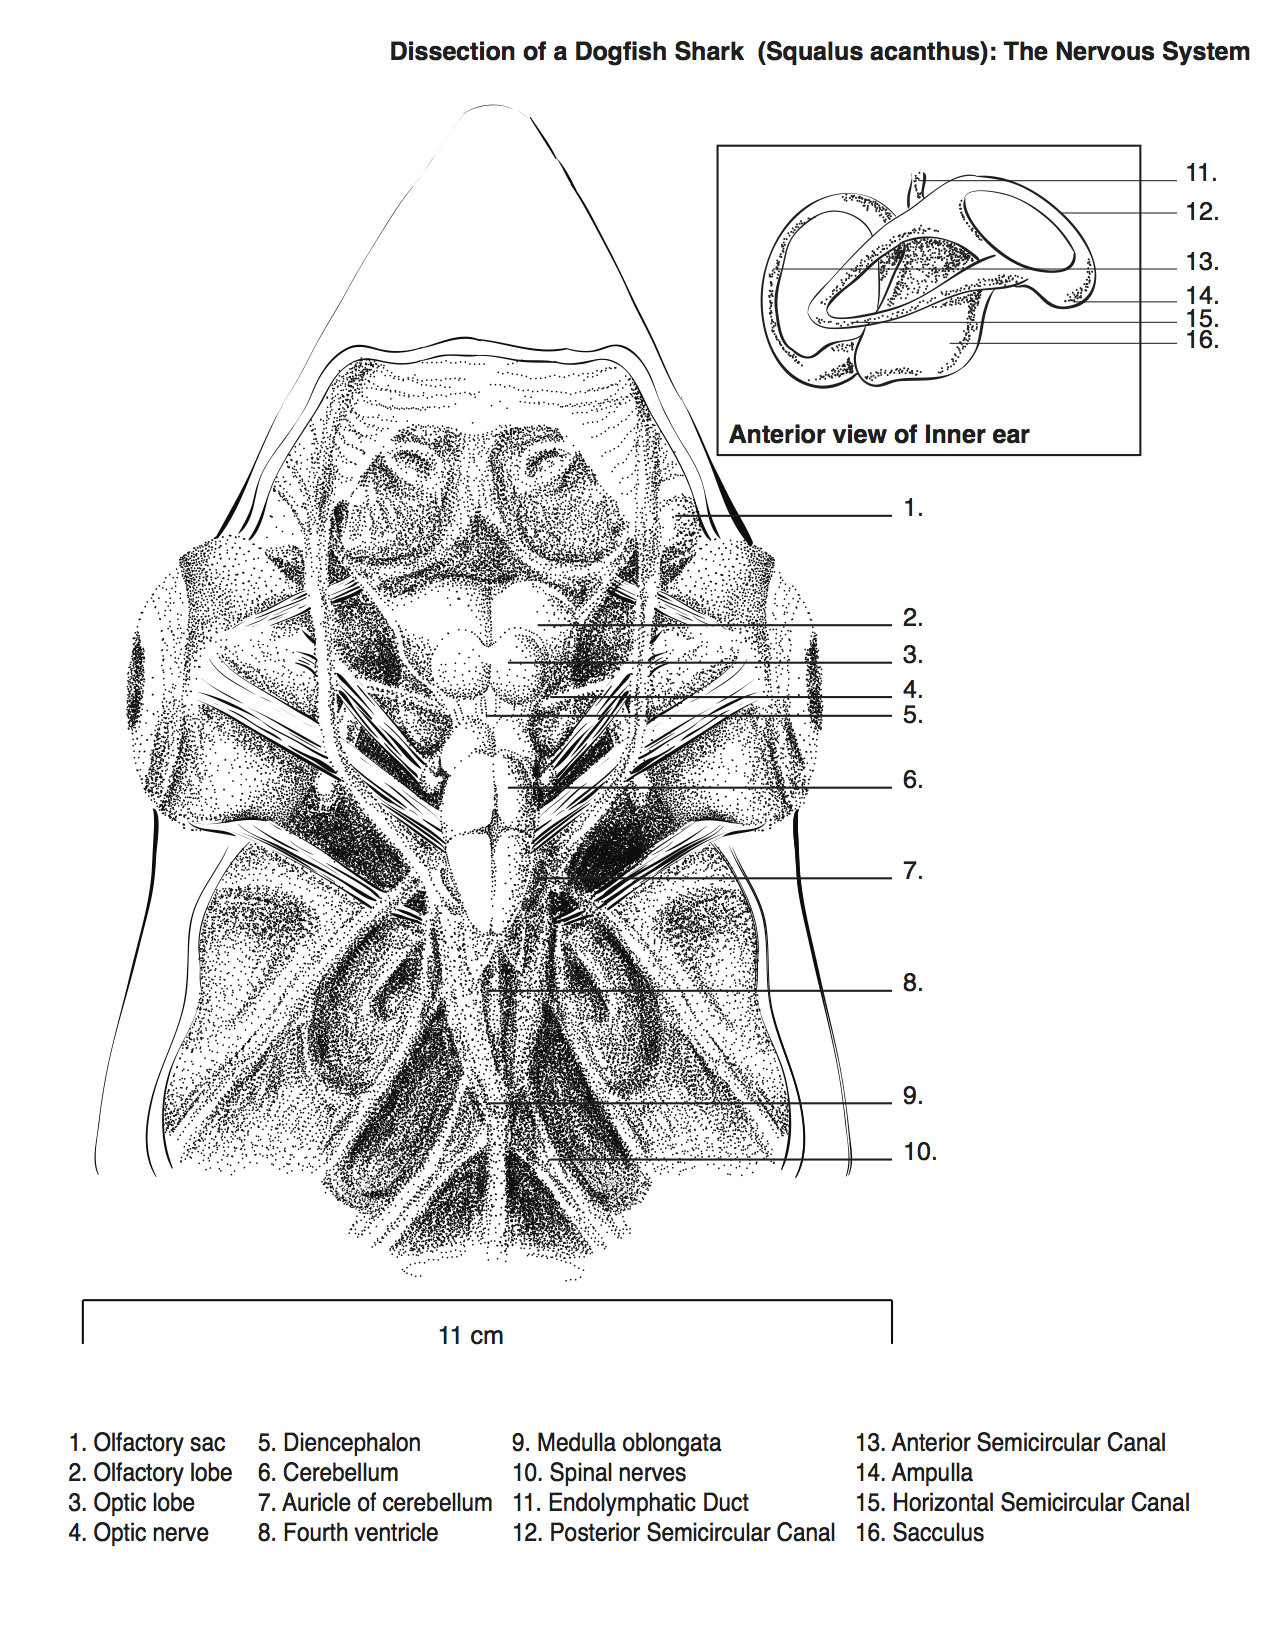 Spiny dogfish diagram - animalcarecollege.info